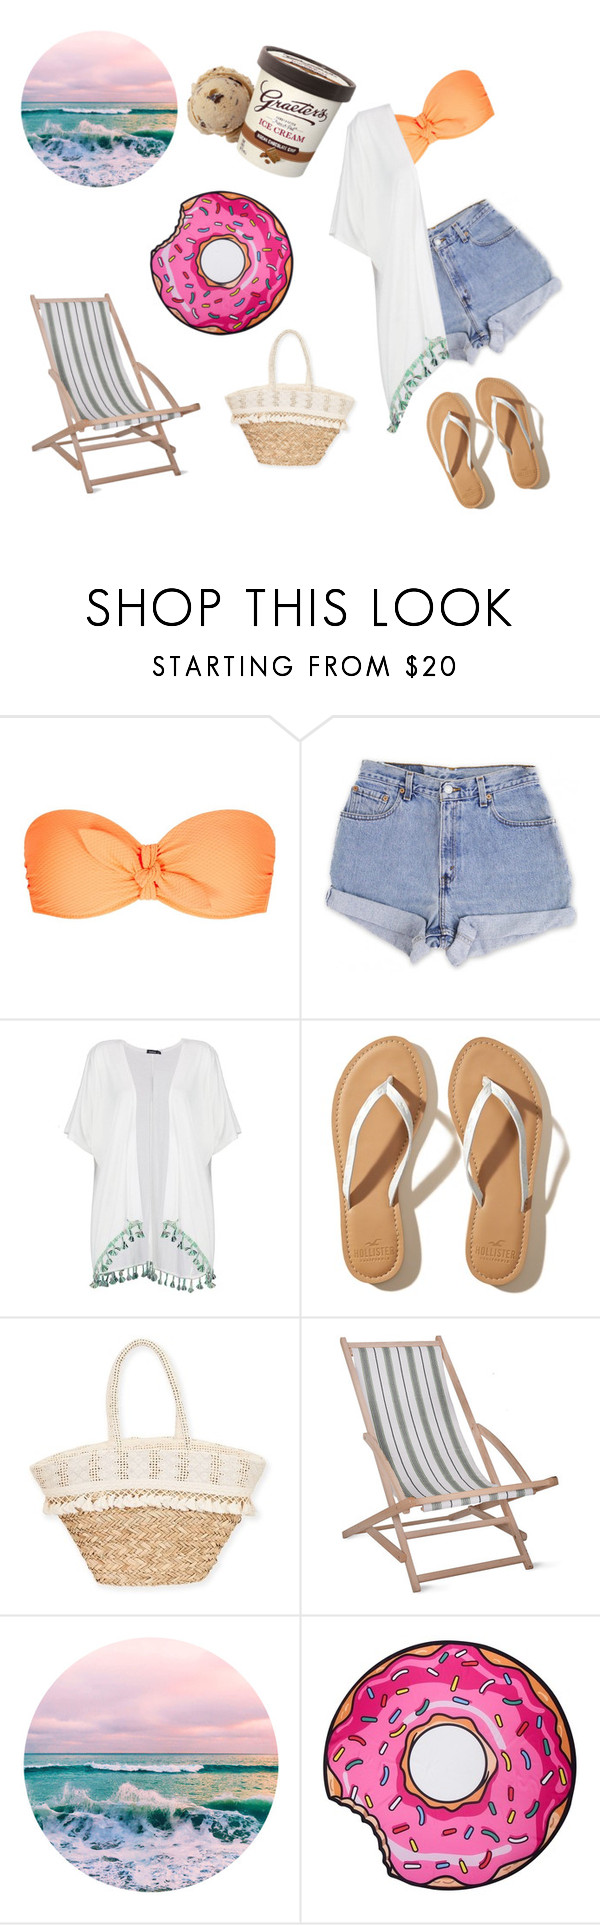 """""""Untitled #43"""" by fotinaki06 ❤ liked on Polyvore featuring Heidi Klein, Levi's, Boohoo, Hollister Co., Sun N' Sand and Garden Trading"""